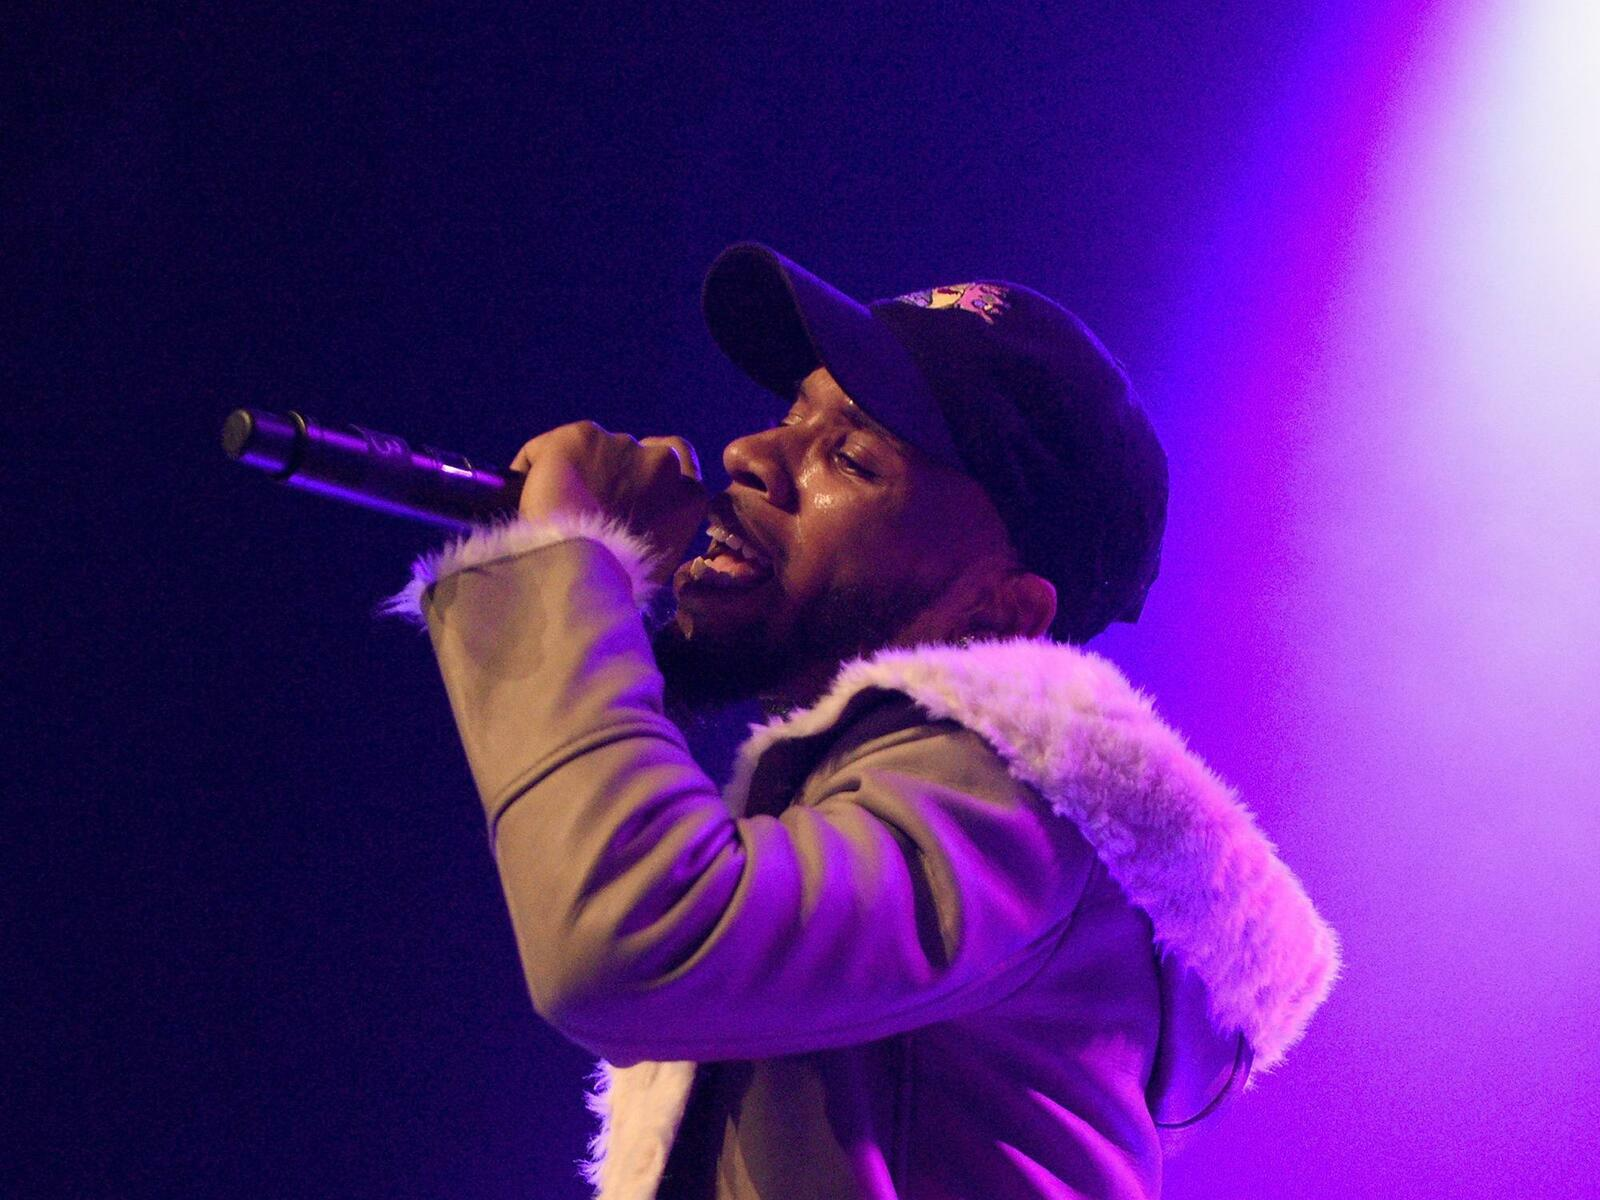 PARKING Tory Lanez July concerts Tickets 7 20 2018 at 8 00 pm